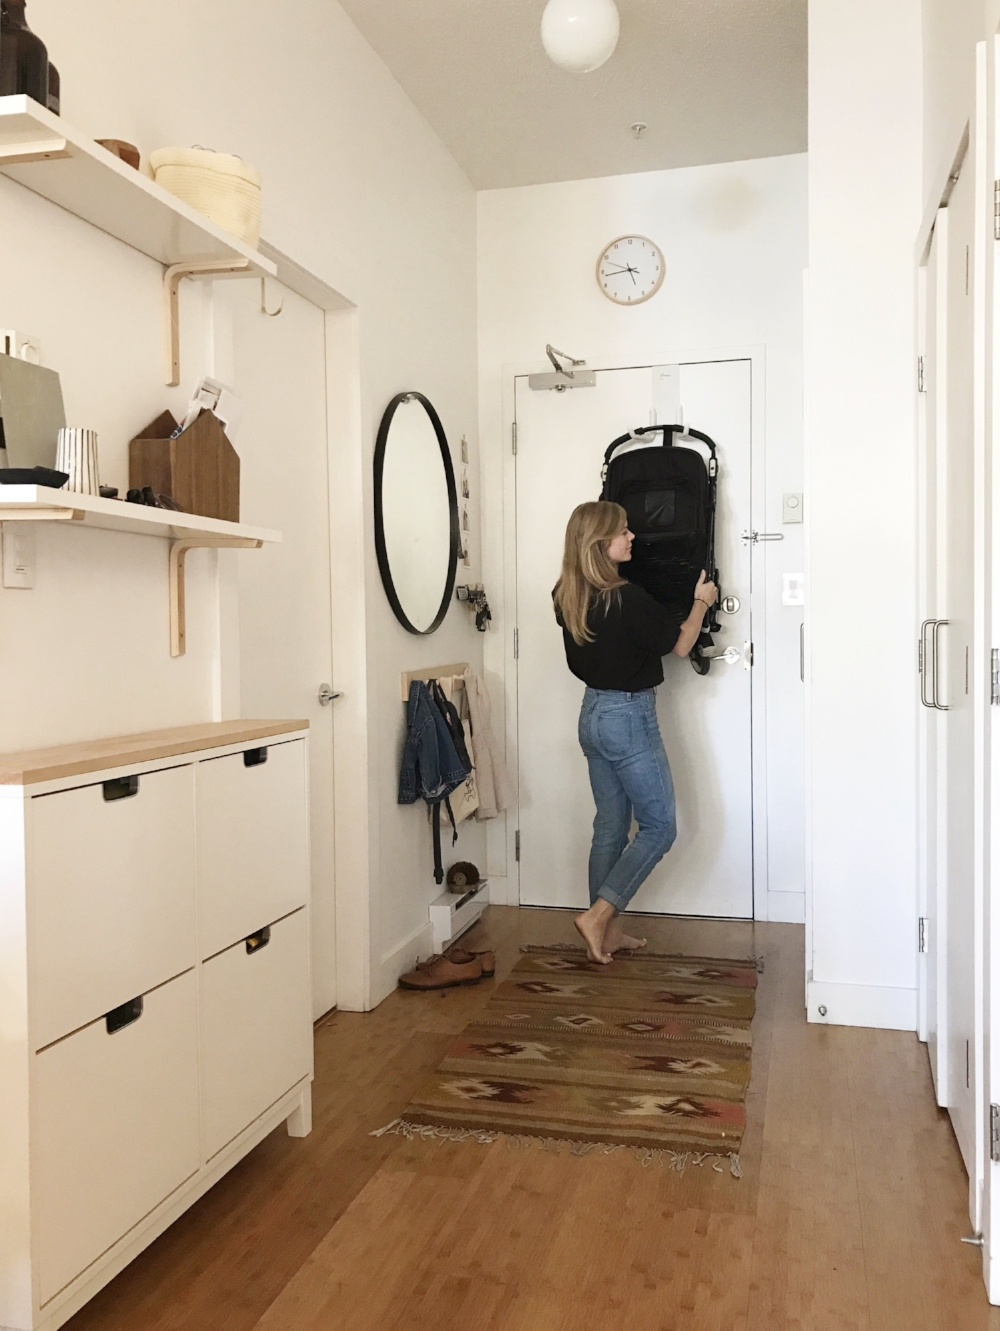 The Organized Home - 7 Things You Can Live Without in a Small Space - The Organized Home